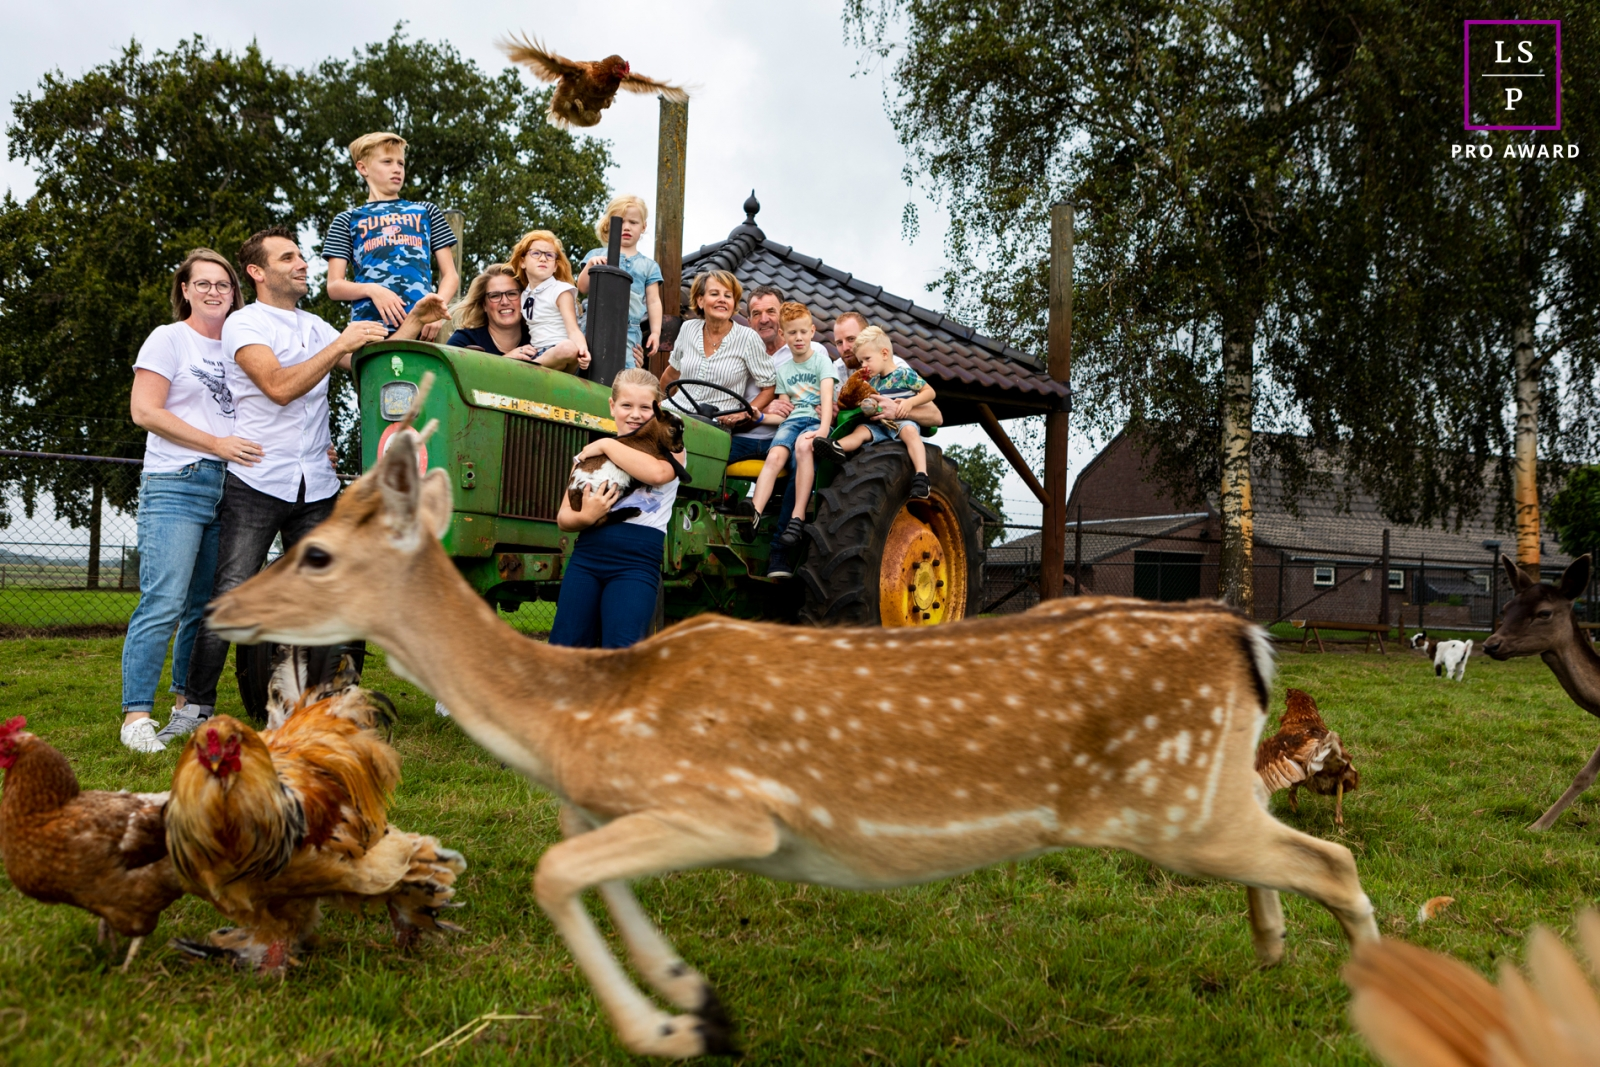 Gelderland Lifestyle Family Photographer created this artistic portrait on the farm with a tractor, deer and chickens